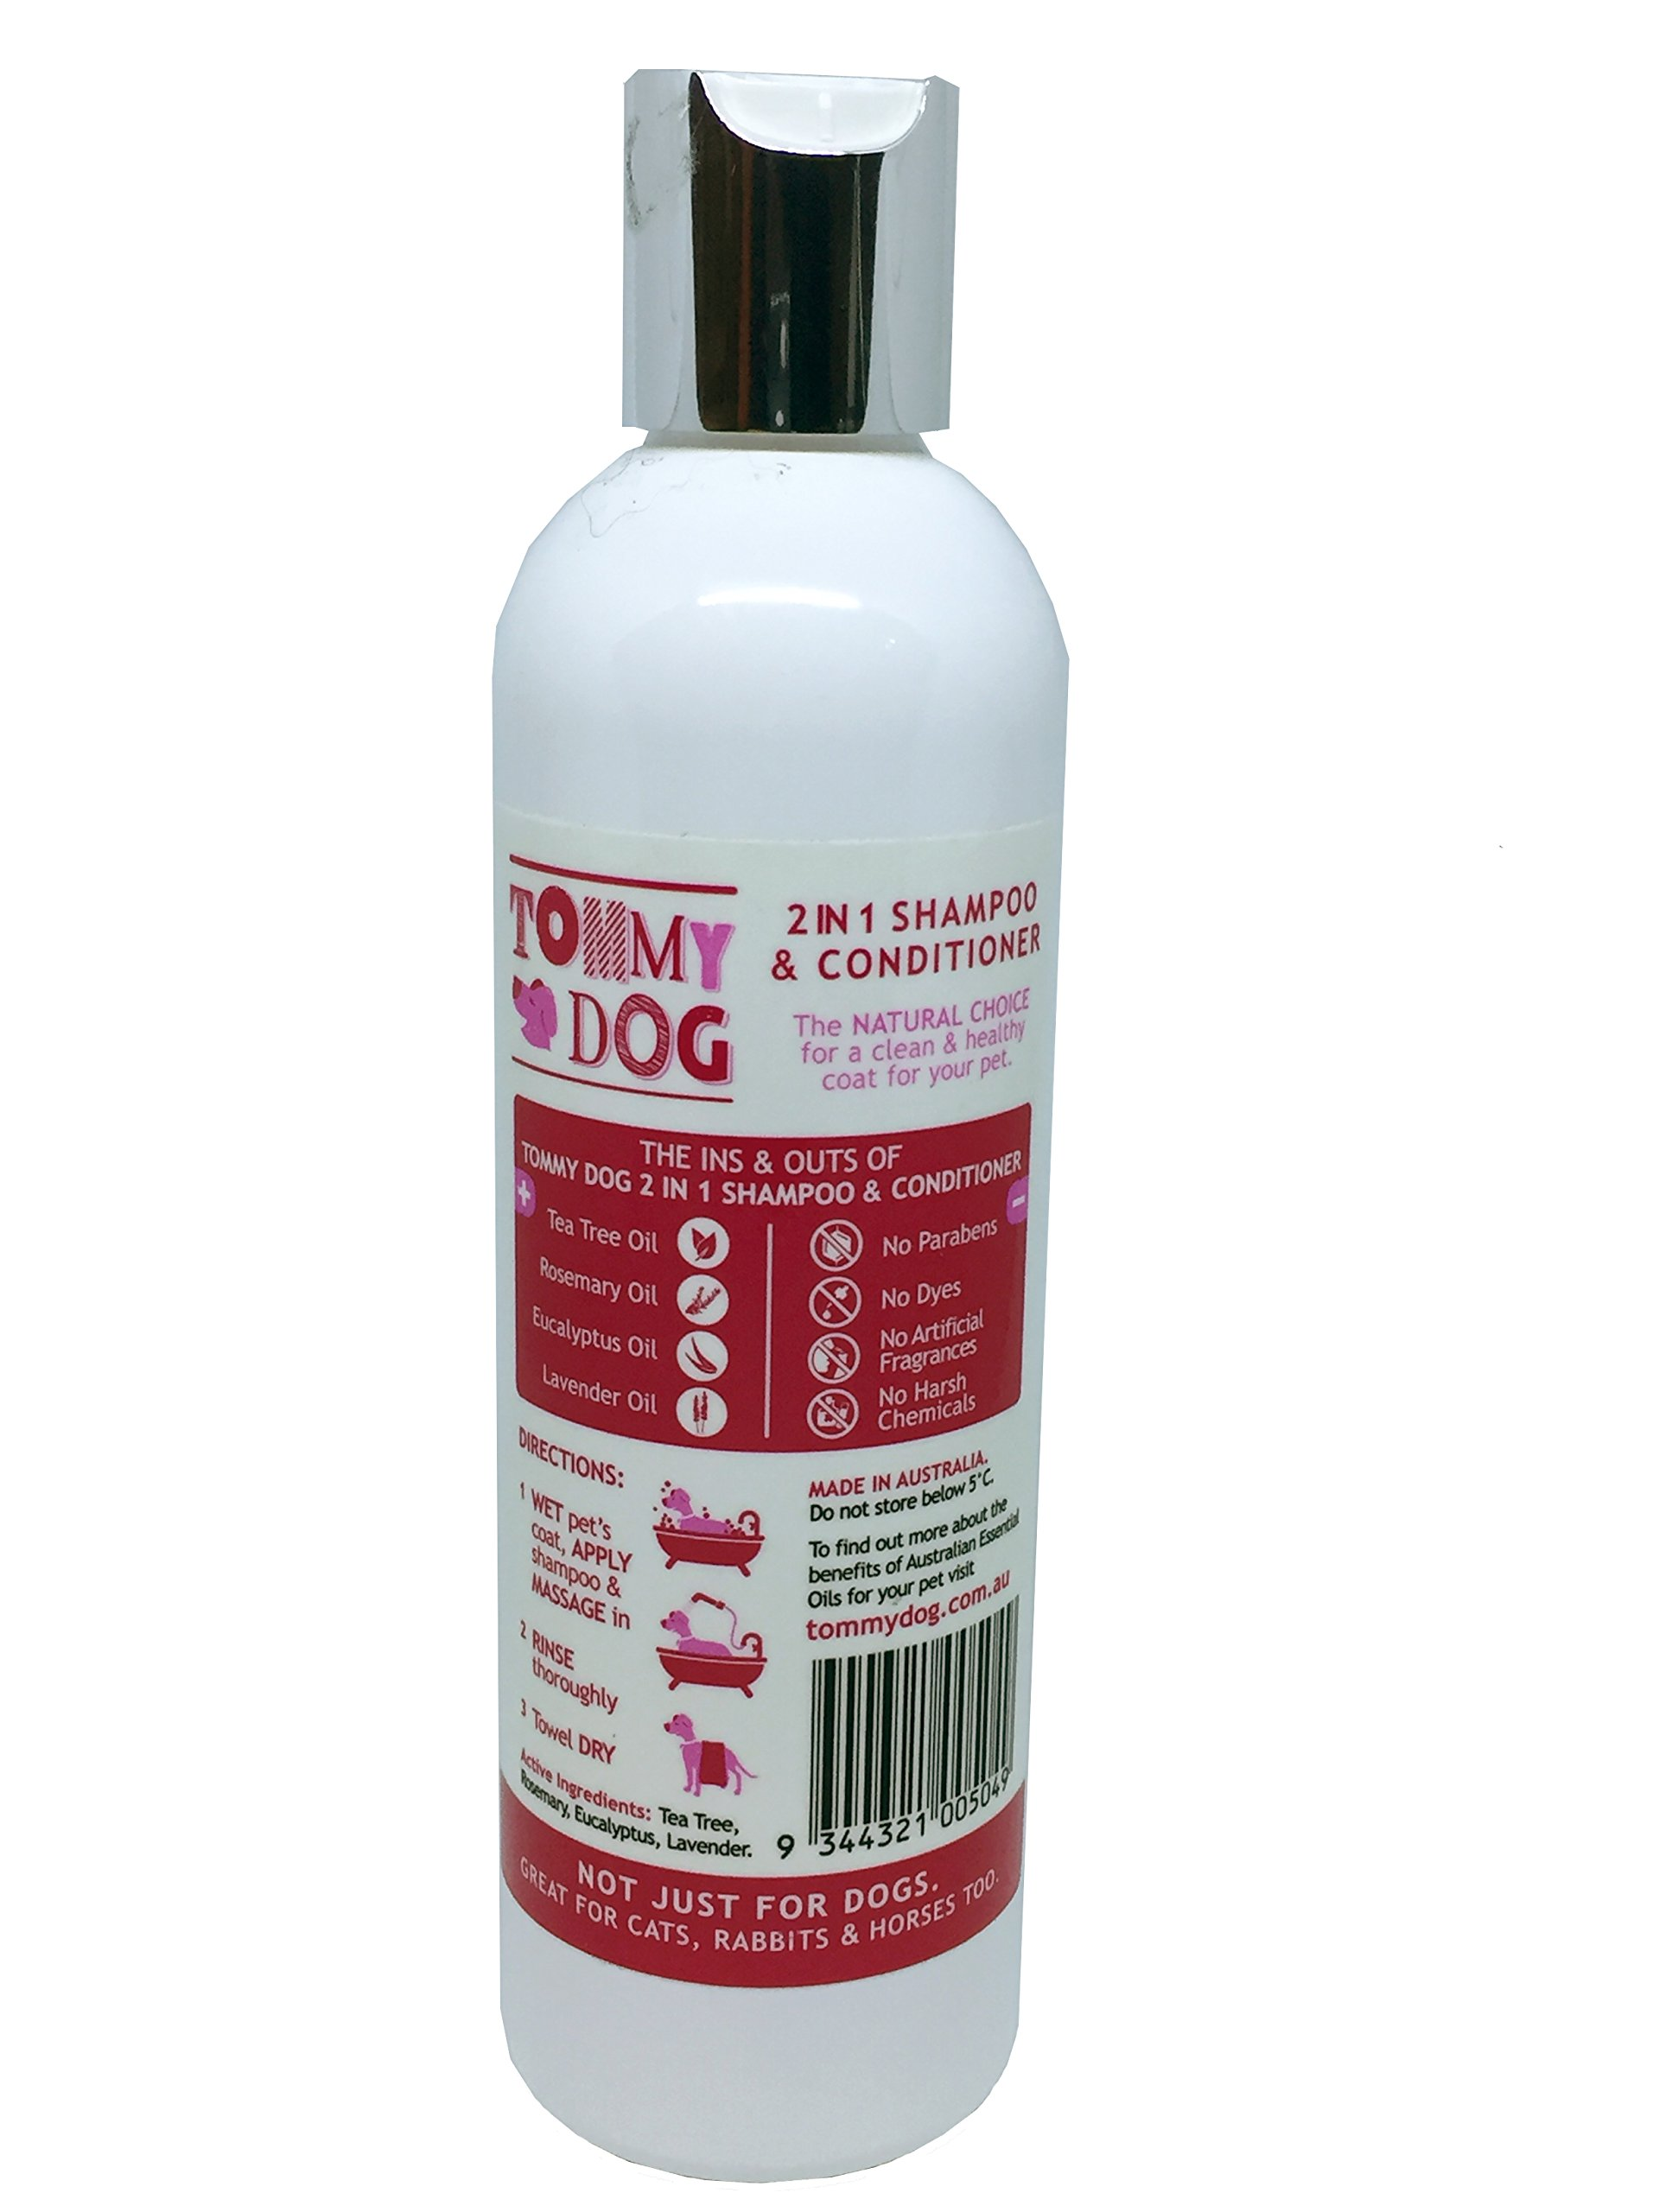 Tommy Dog 2 in 1 Shampoo & Conditioner - 8.45 oz - Soothing, Moisturising Shampoo Professionally Formulated to Cleanse and Nourish Coats to help Maintain Healthy Skin and Coat Condition.